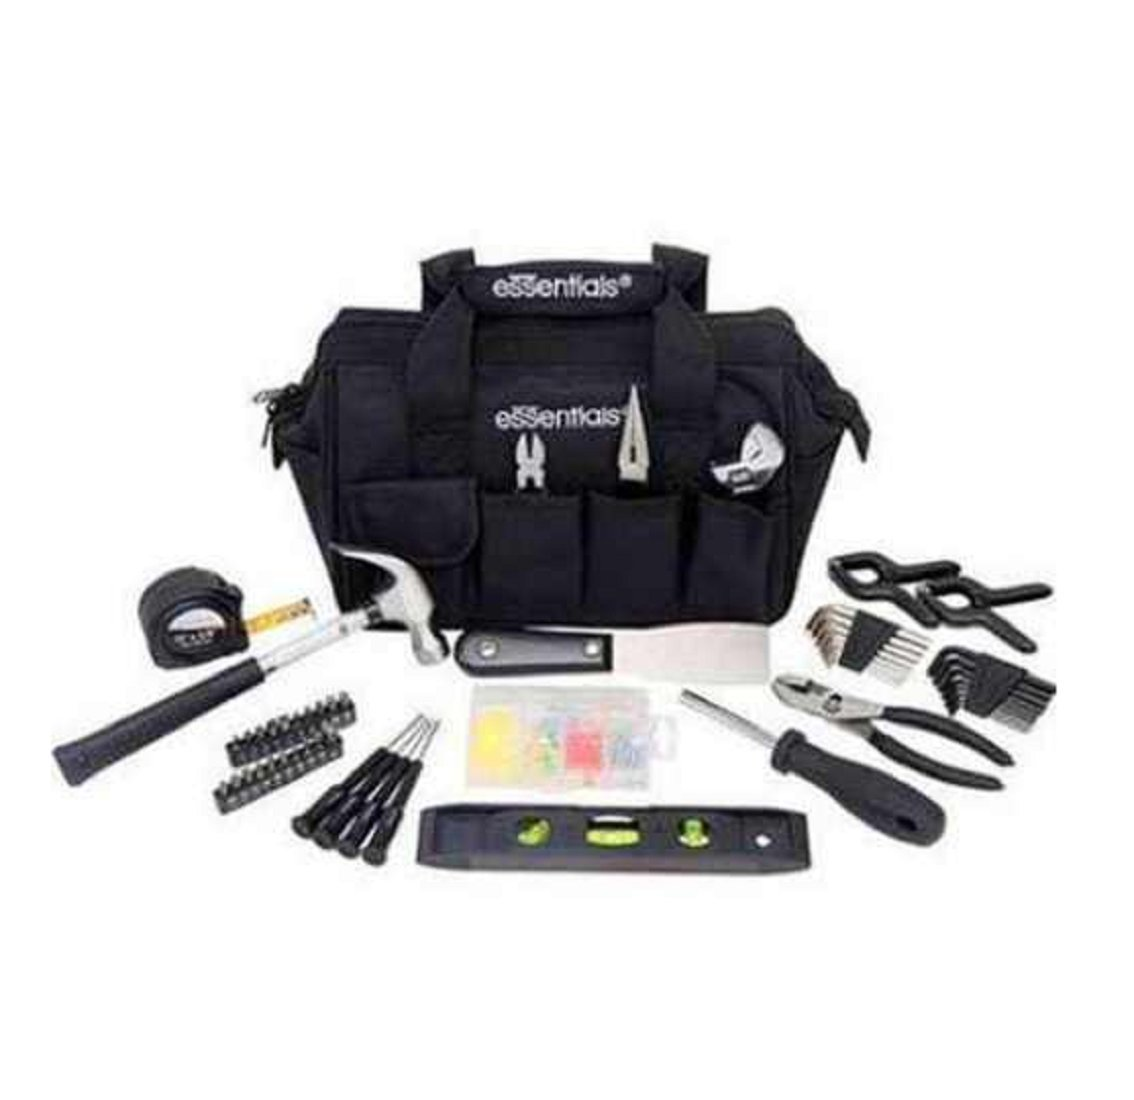 NEW Essentials 53 pc Around the House Tool Kit Mechanics Black Bag piece Set Men